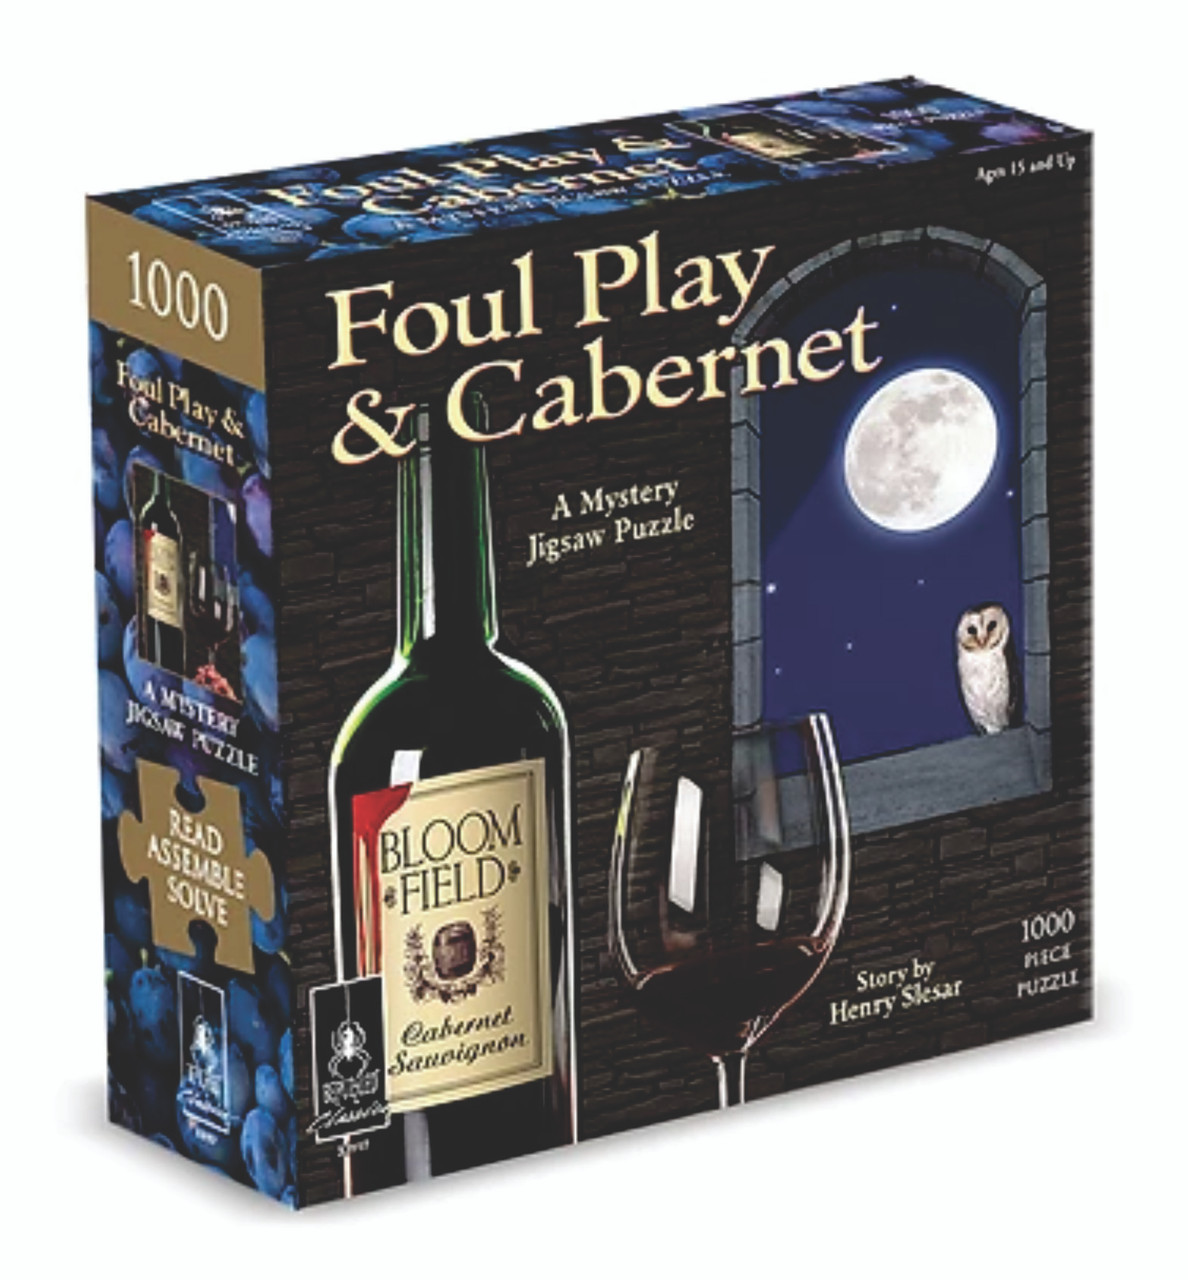 Classic Mystery Jigsaw Puzzle - Foul Play & Cabernet 1000 pieces